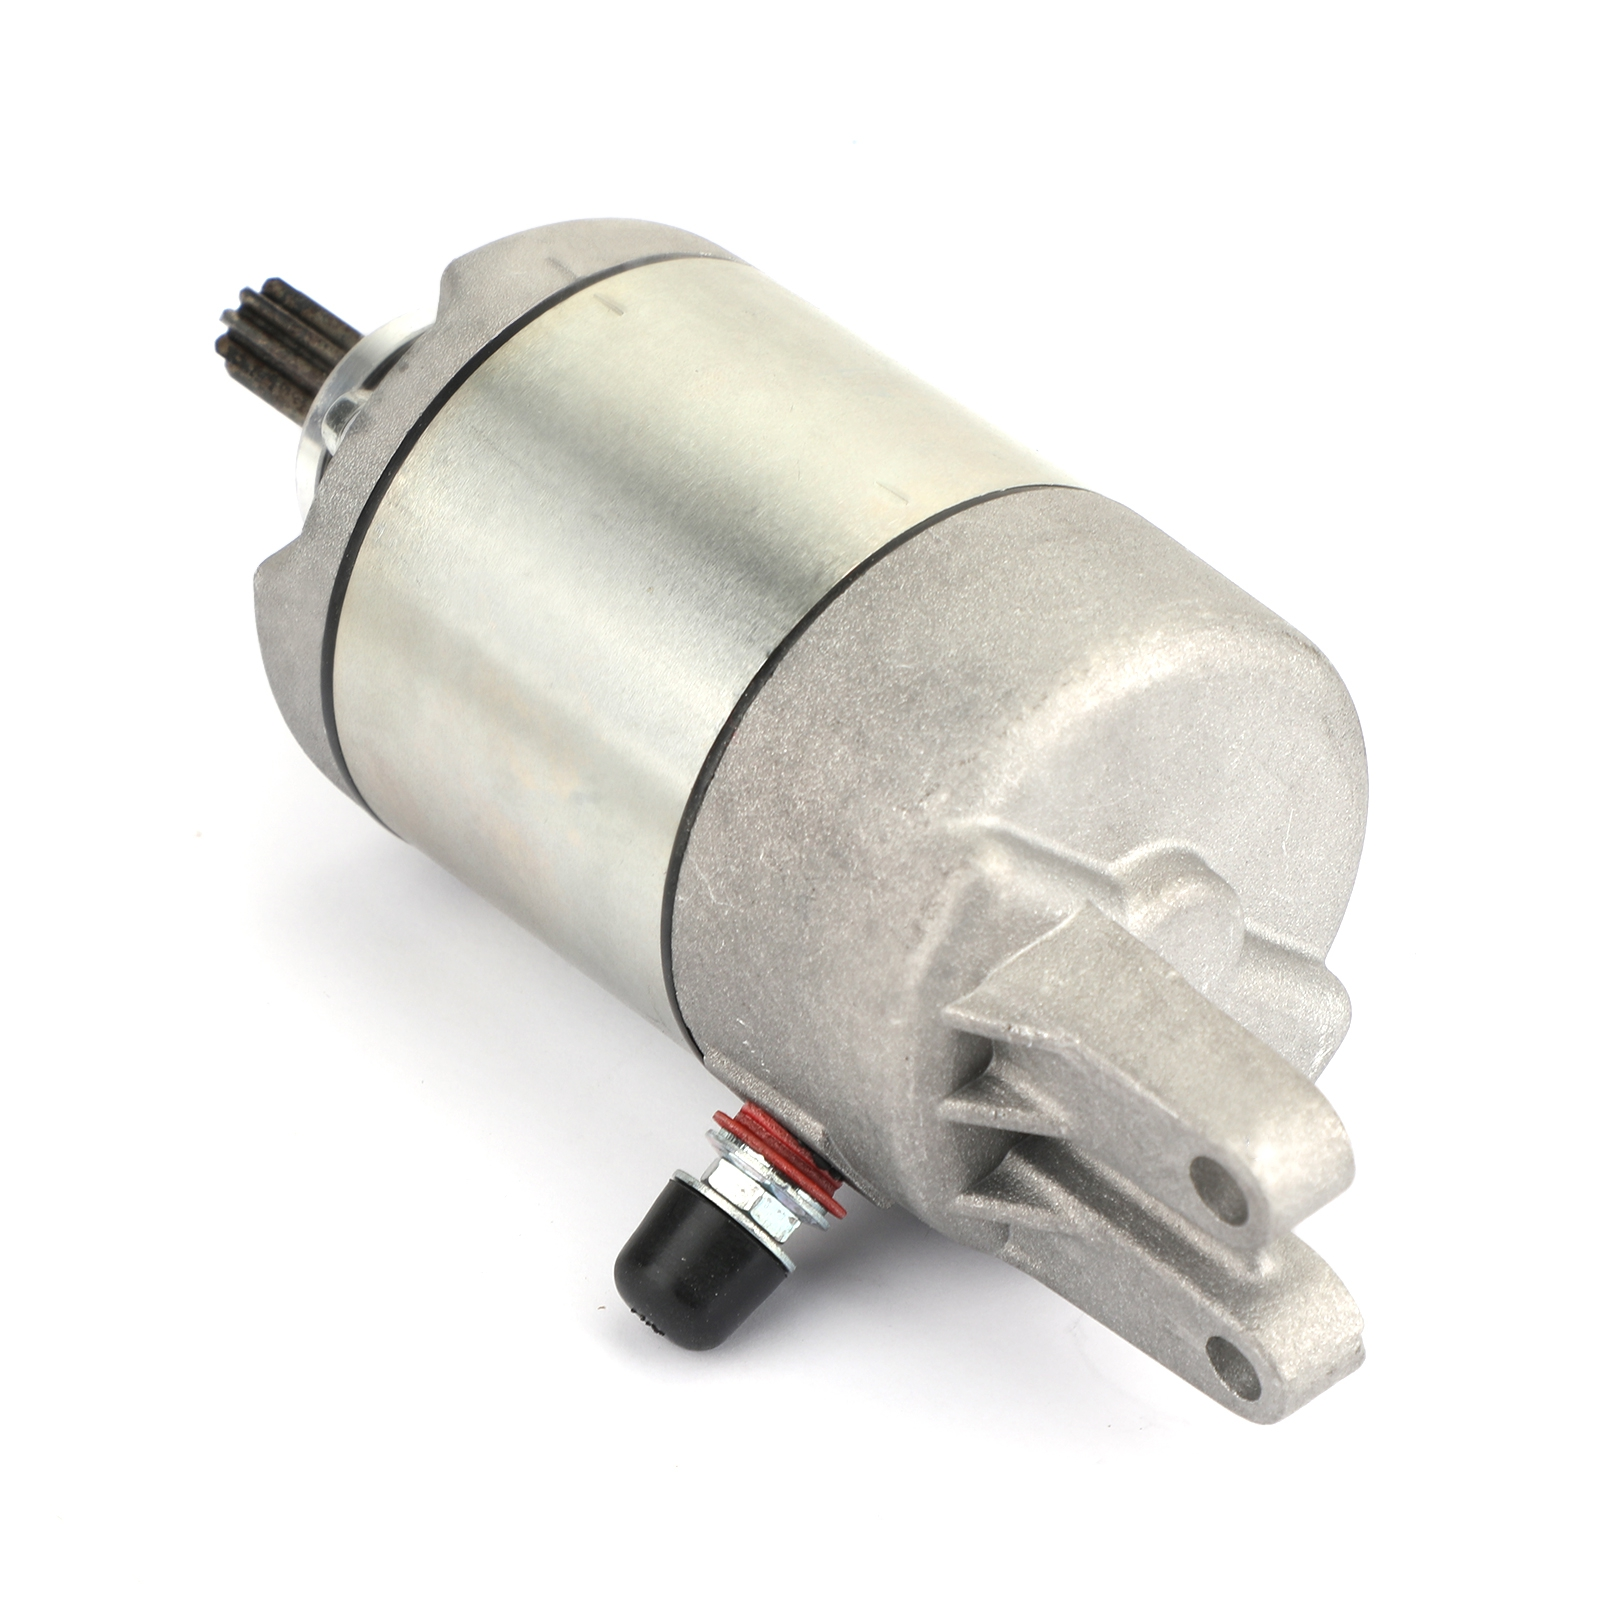 For KTM LC4-E 640 2005 Arrowhead Starter Motor